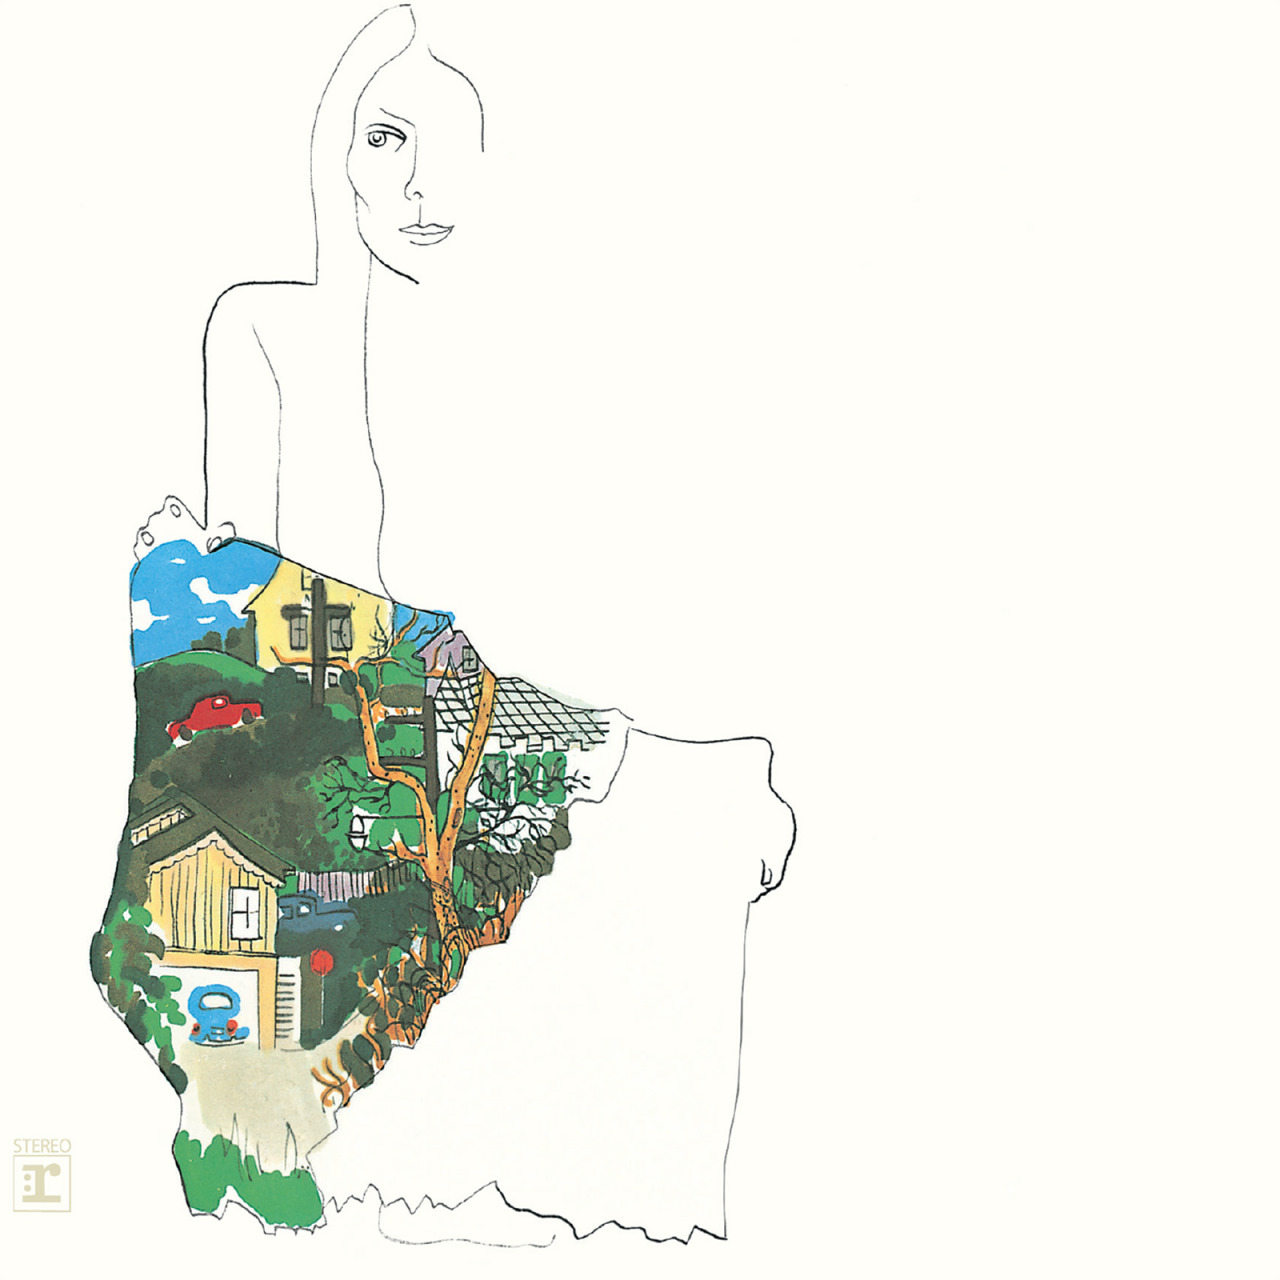 Joni Mitchell 'Ladies of the Canyon', Reprise, 1970. Cover artwork by Joni Mitchell.